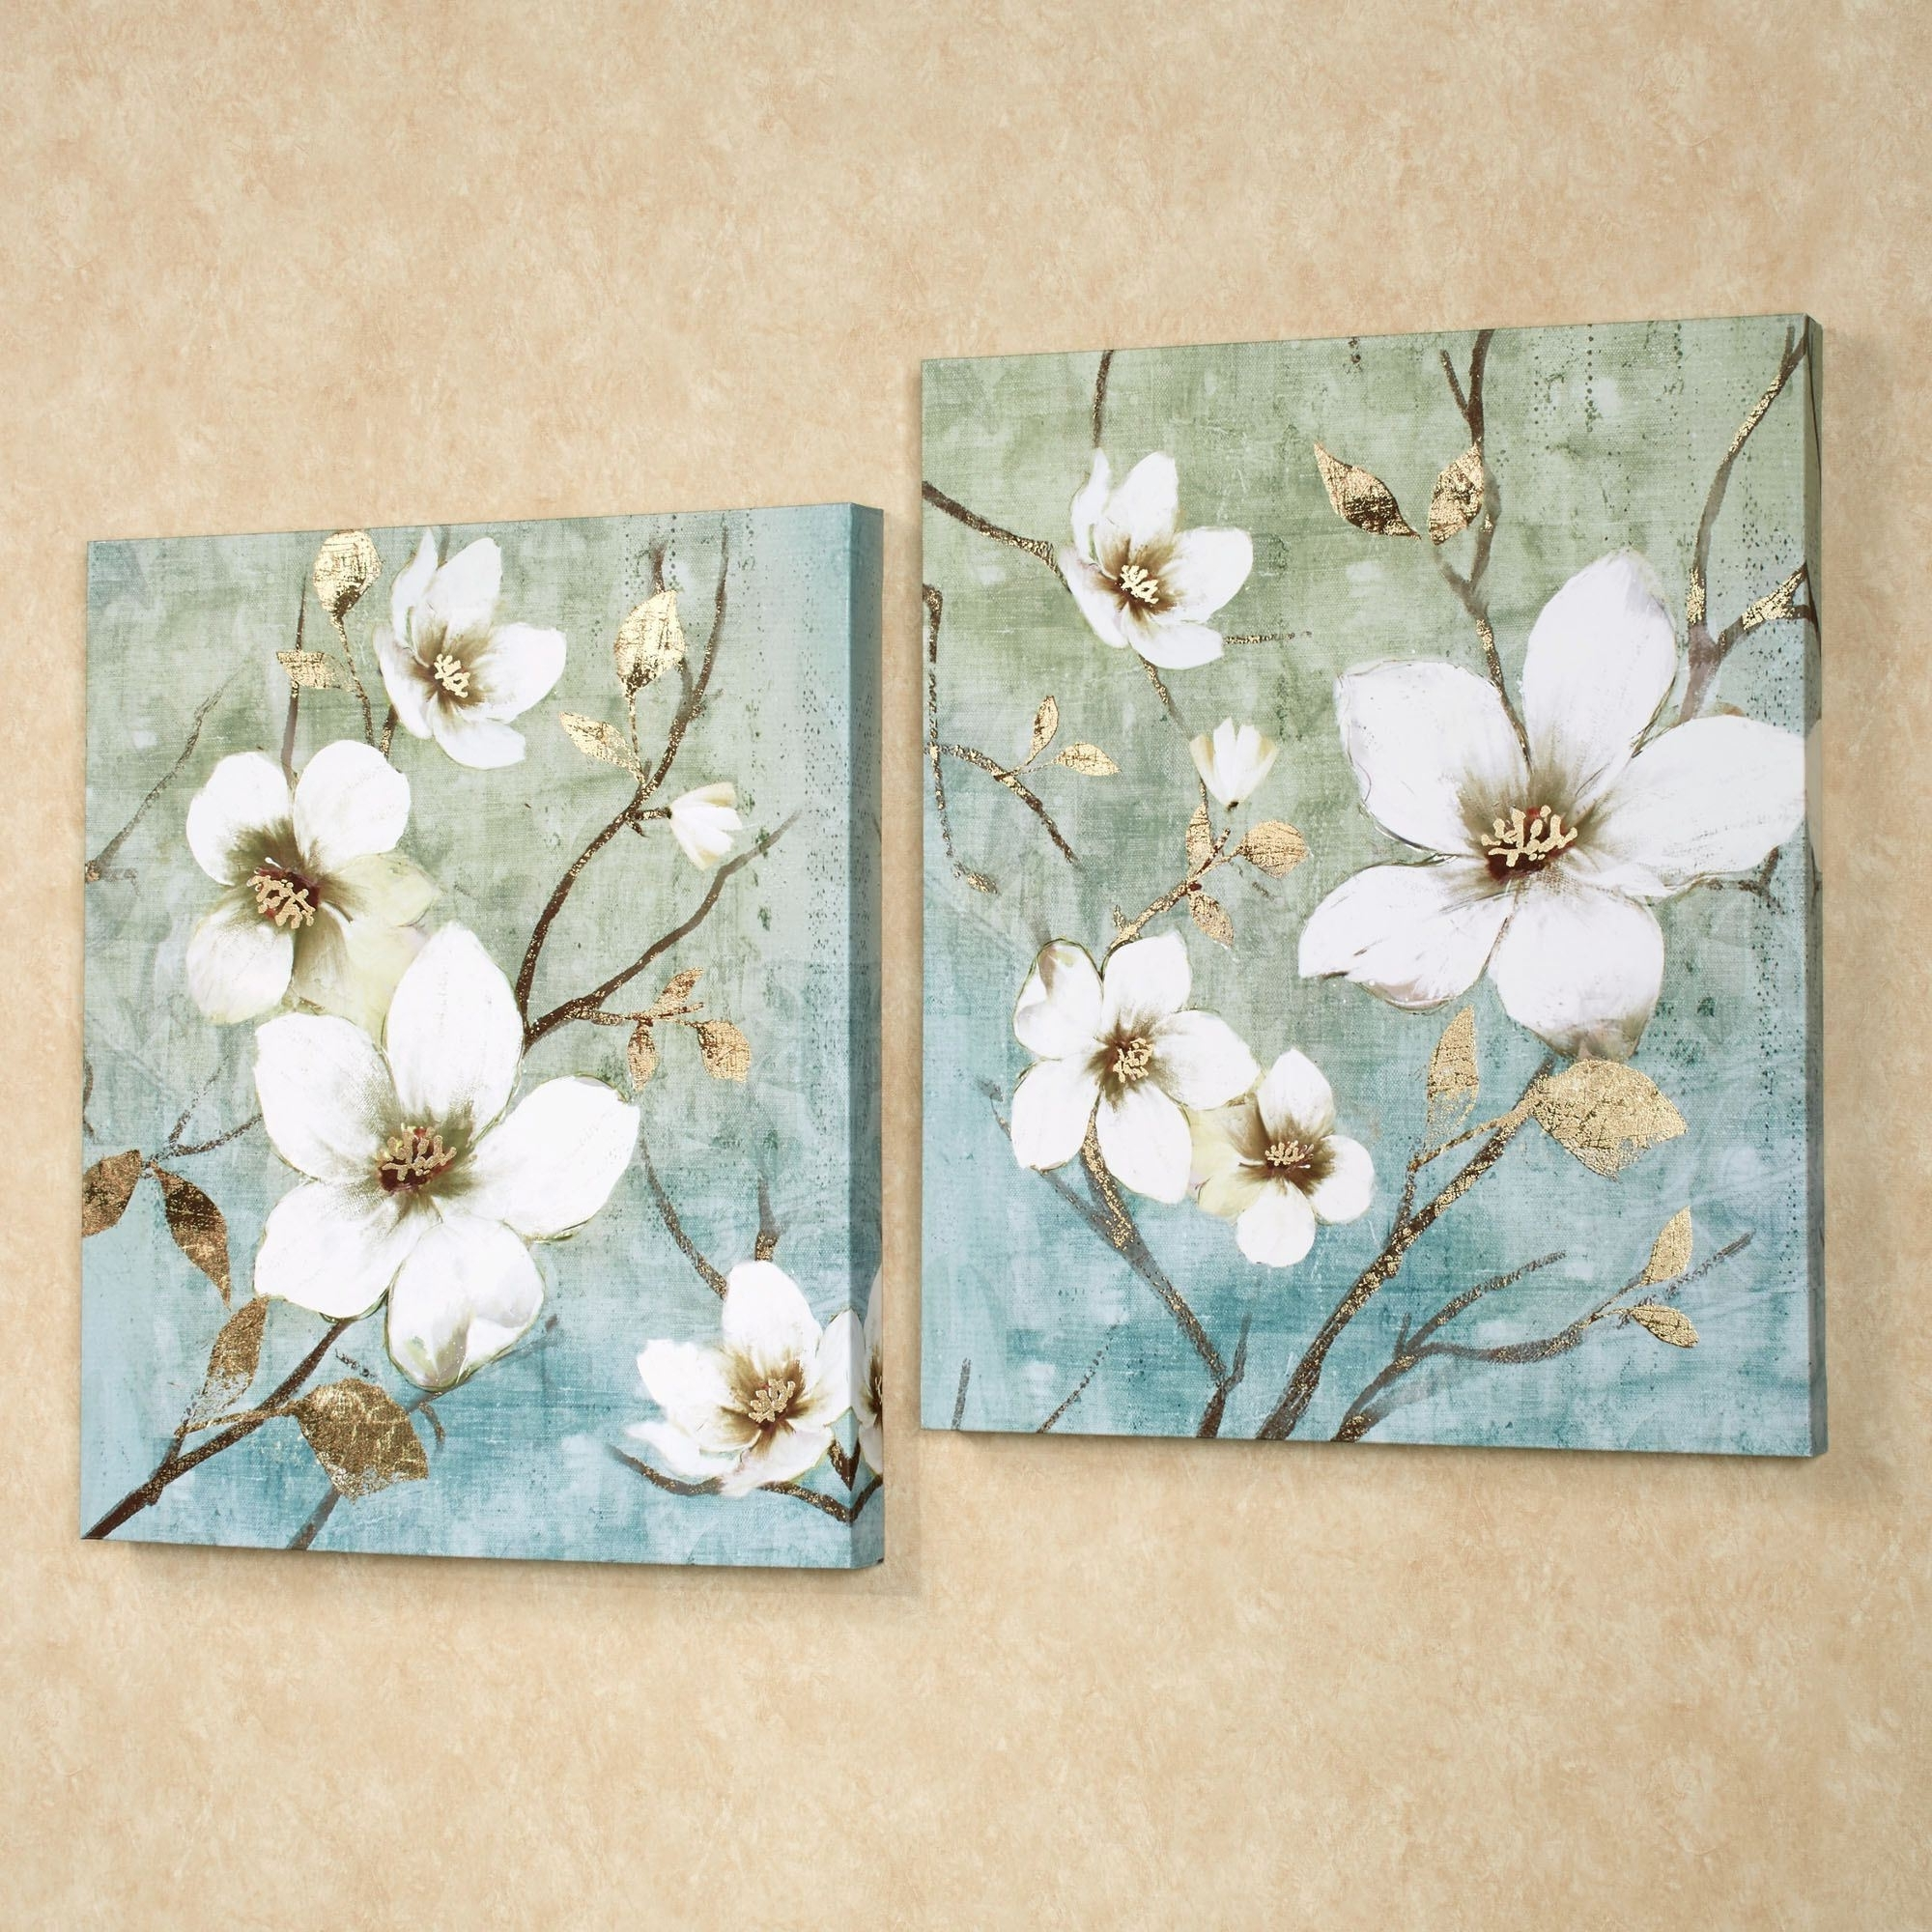 Preferred In Bloom Floral Canvas Wall Art Set Regarding Floral Canvas Wall Art (View 2 of 15)